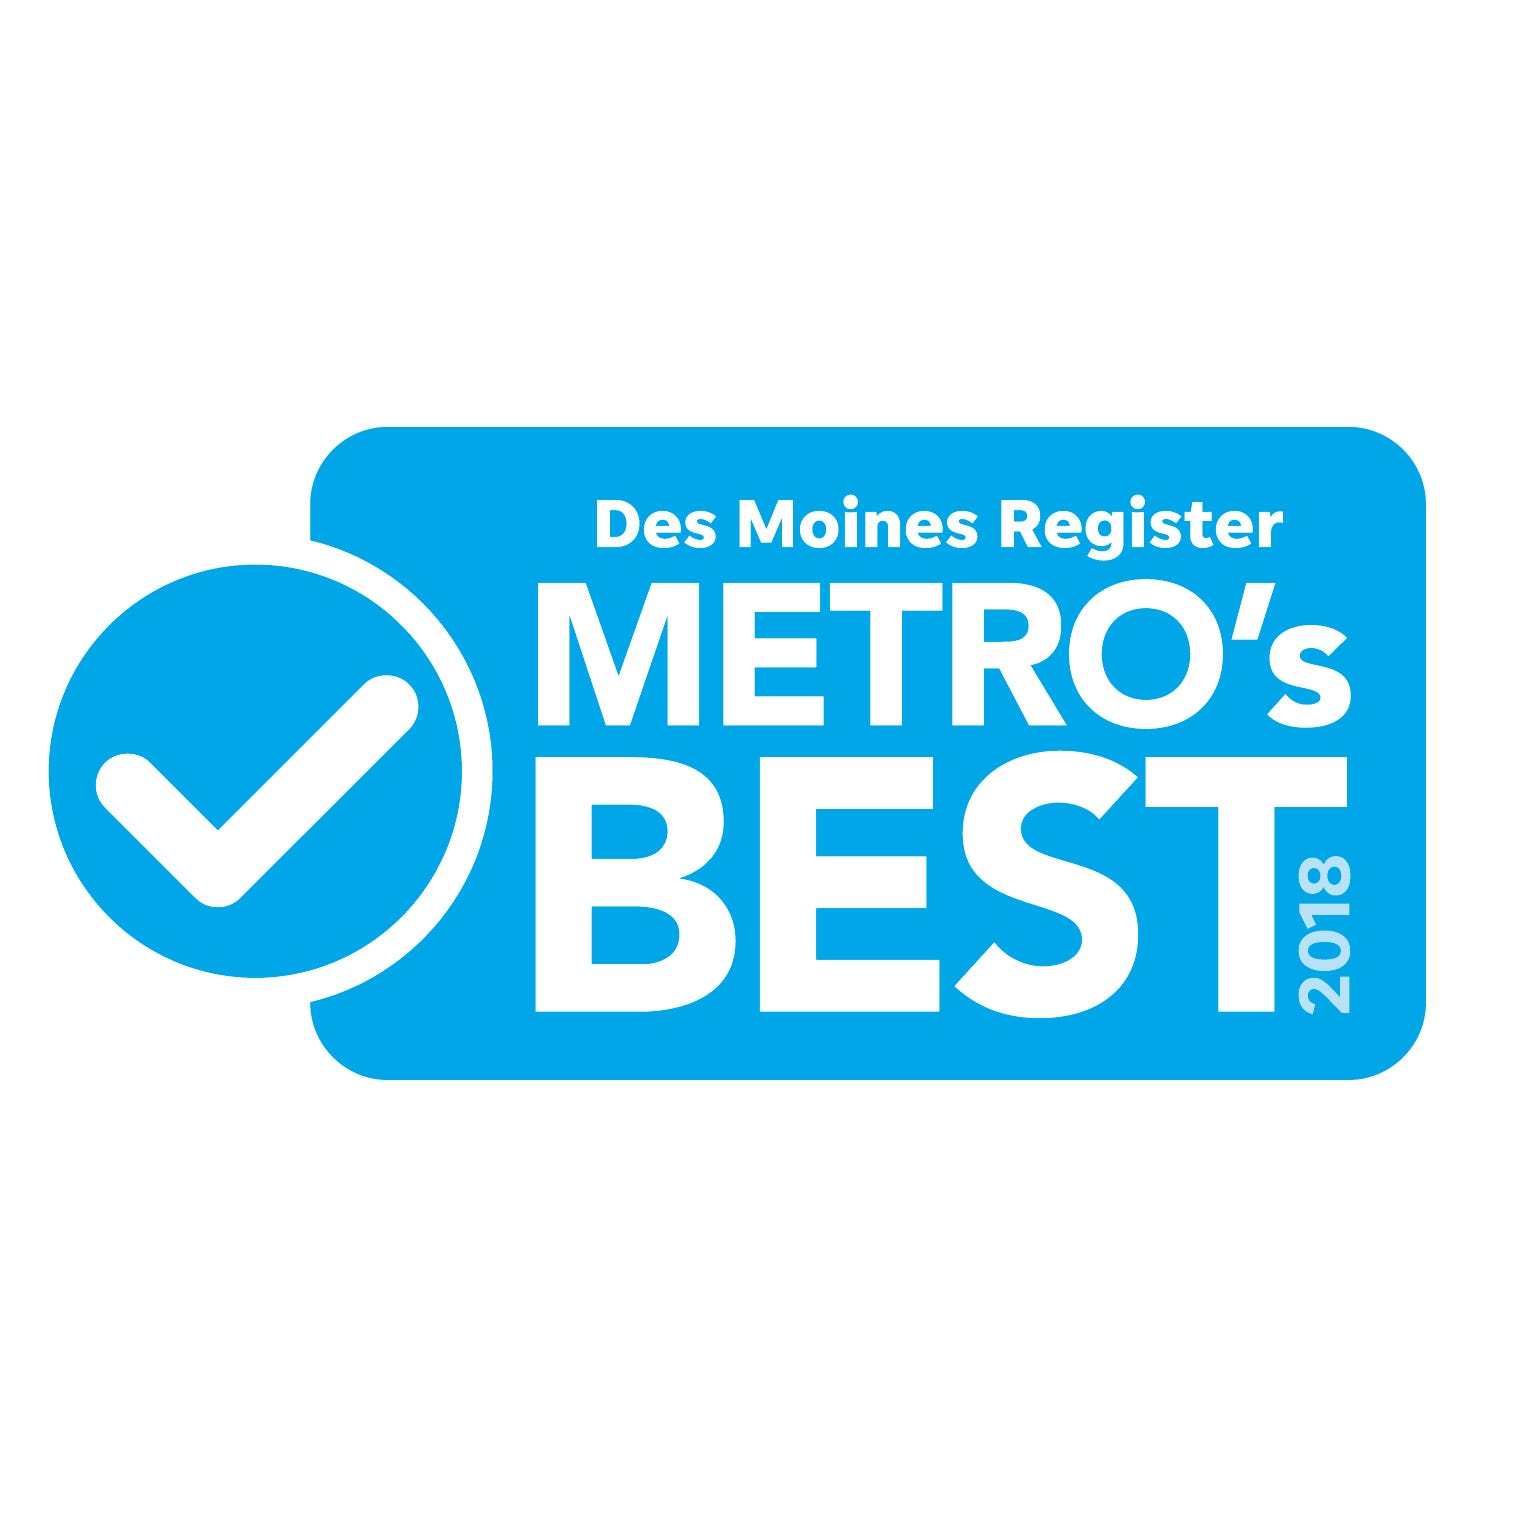 2018 Des Moines Register Metro's Best